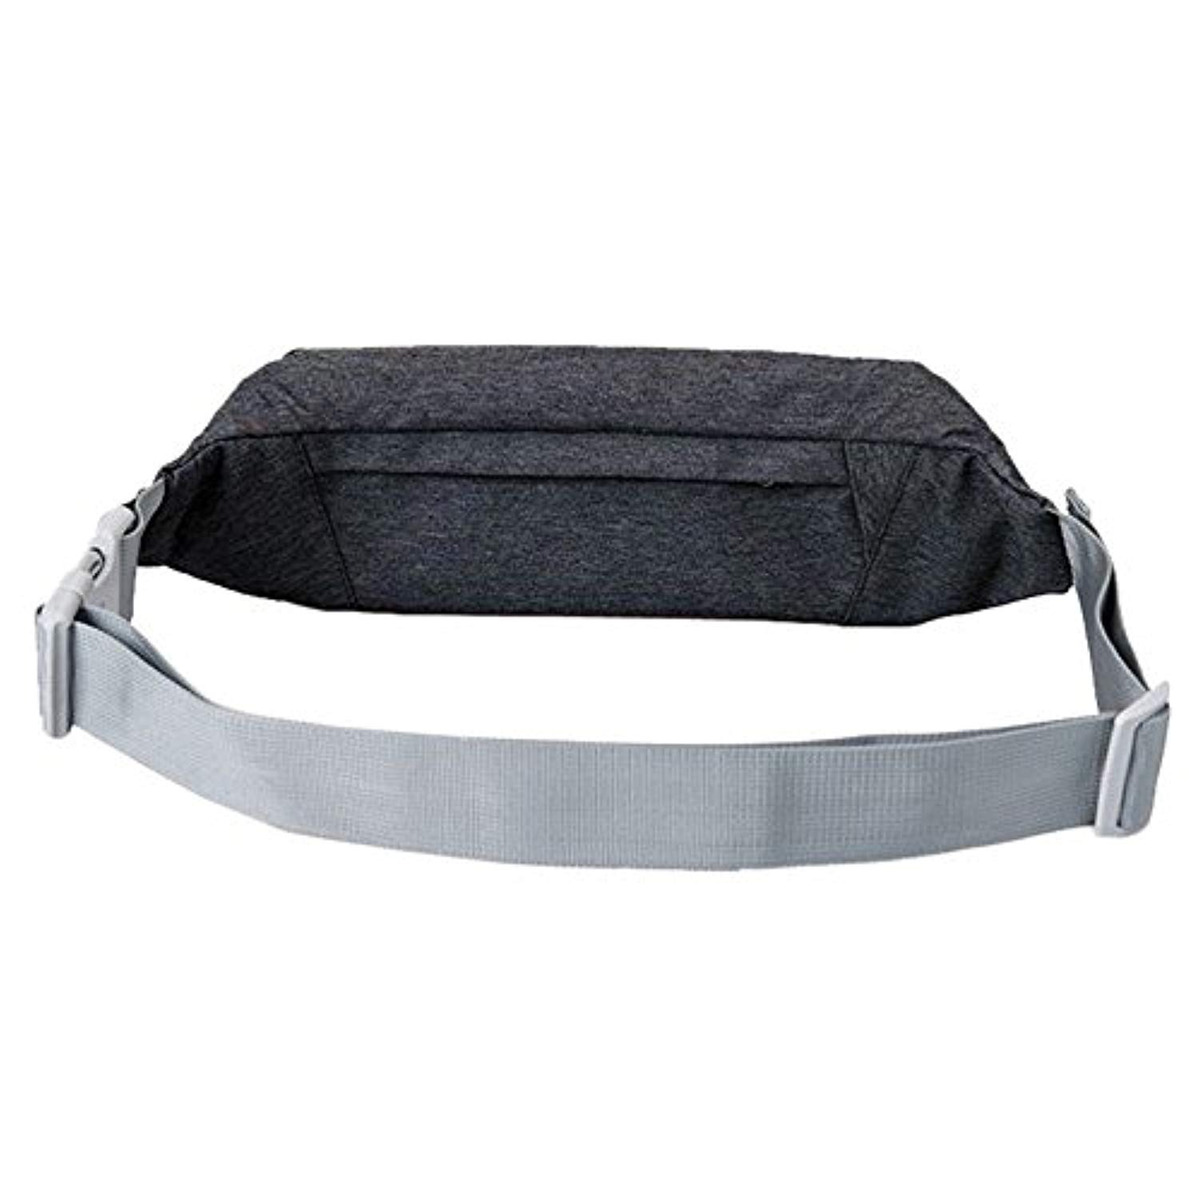 7a3a1f708217 Meanhoo Extreme Waterproof Fanny Pack Para